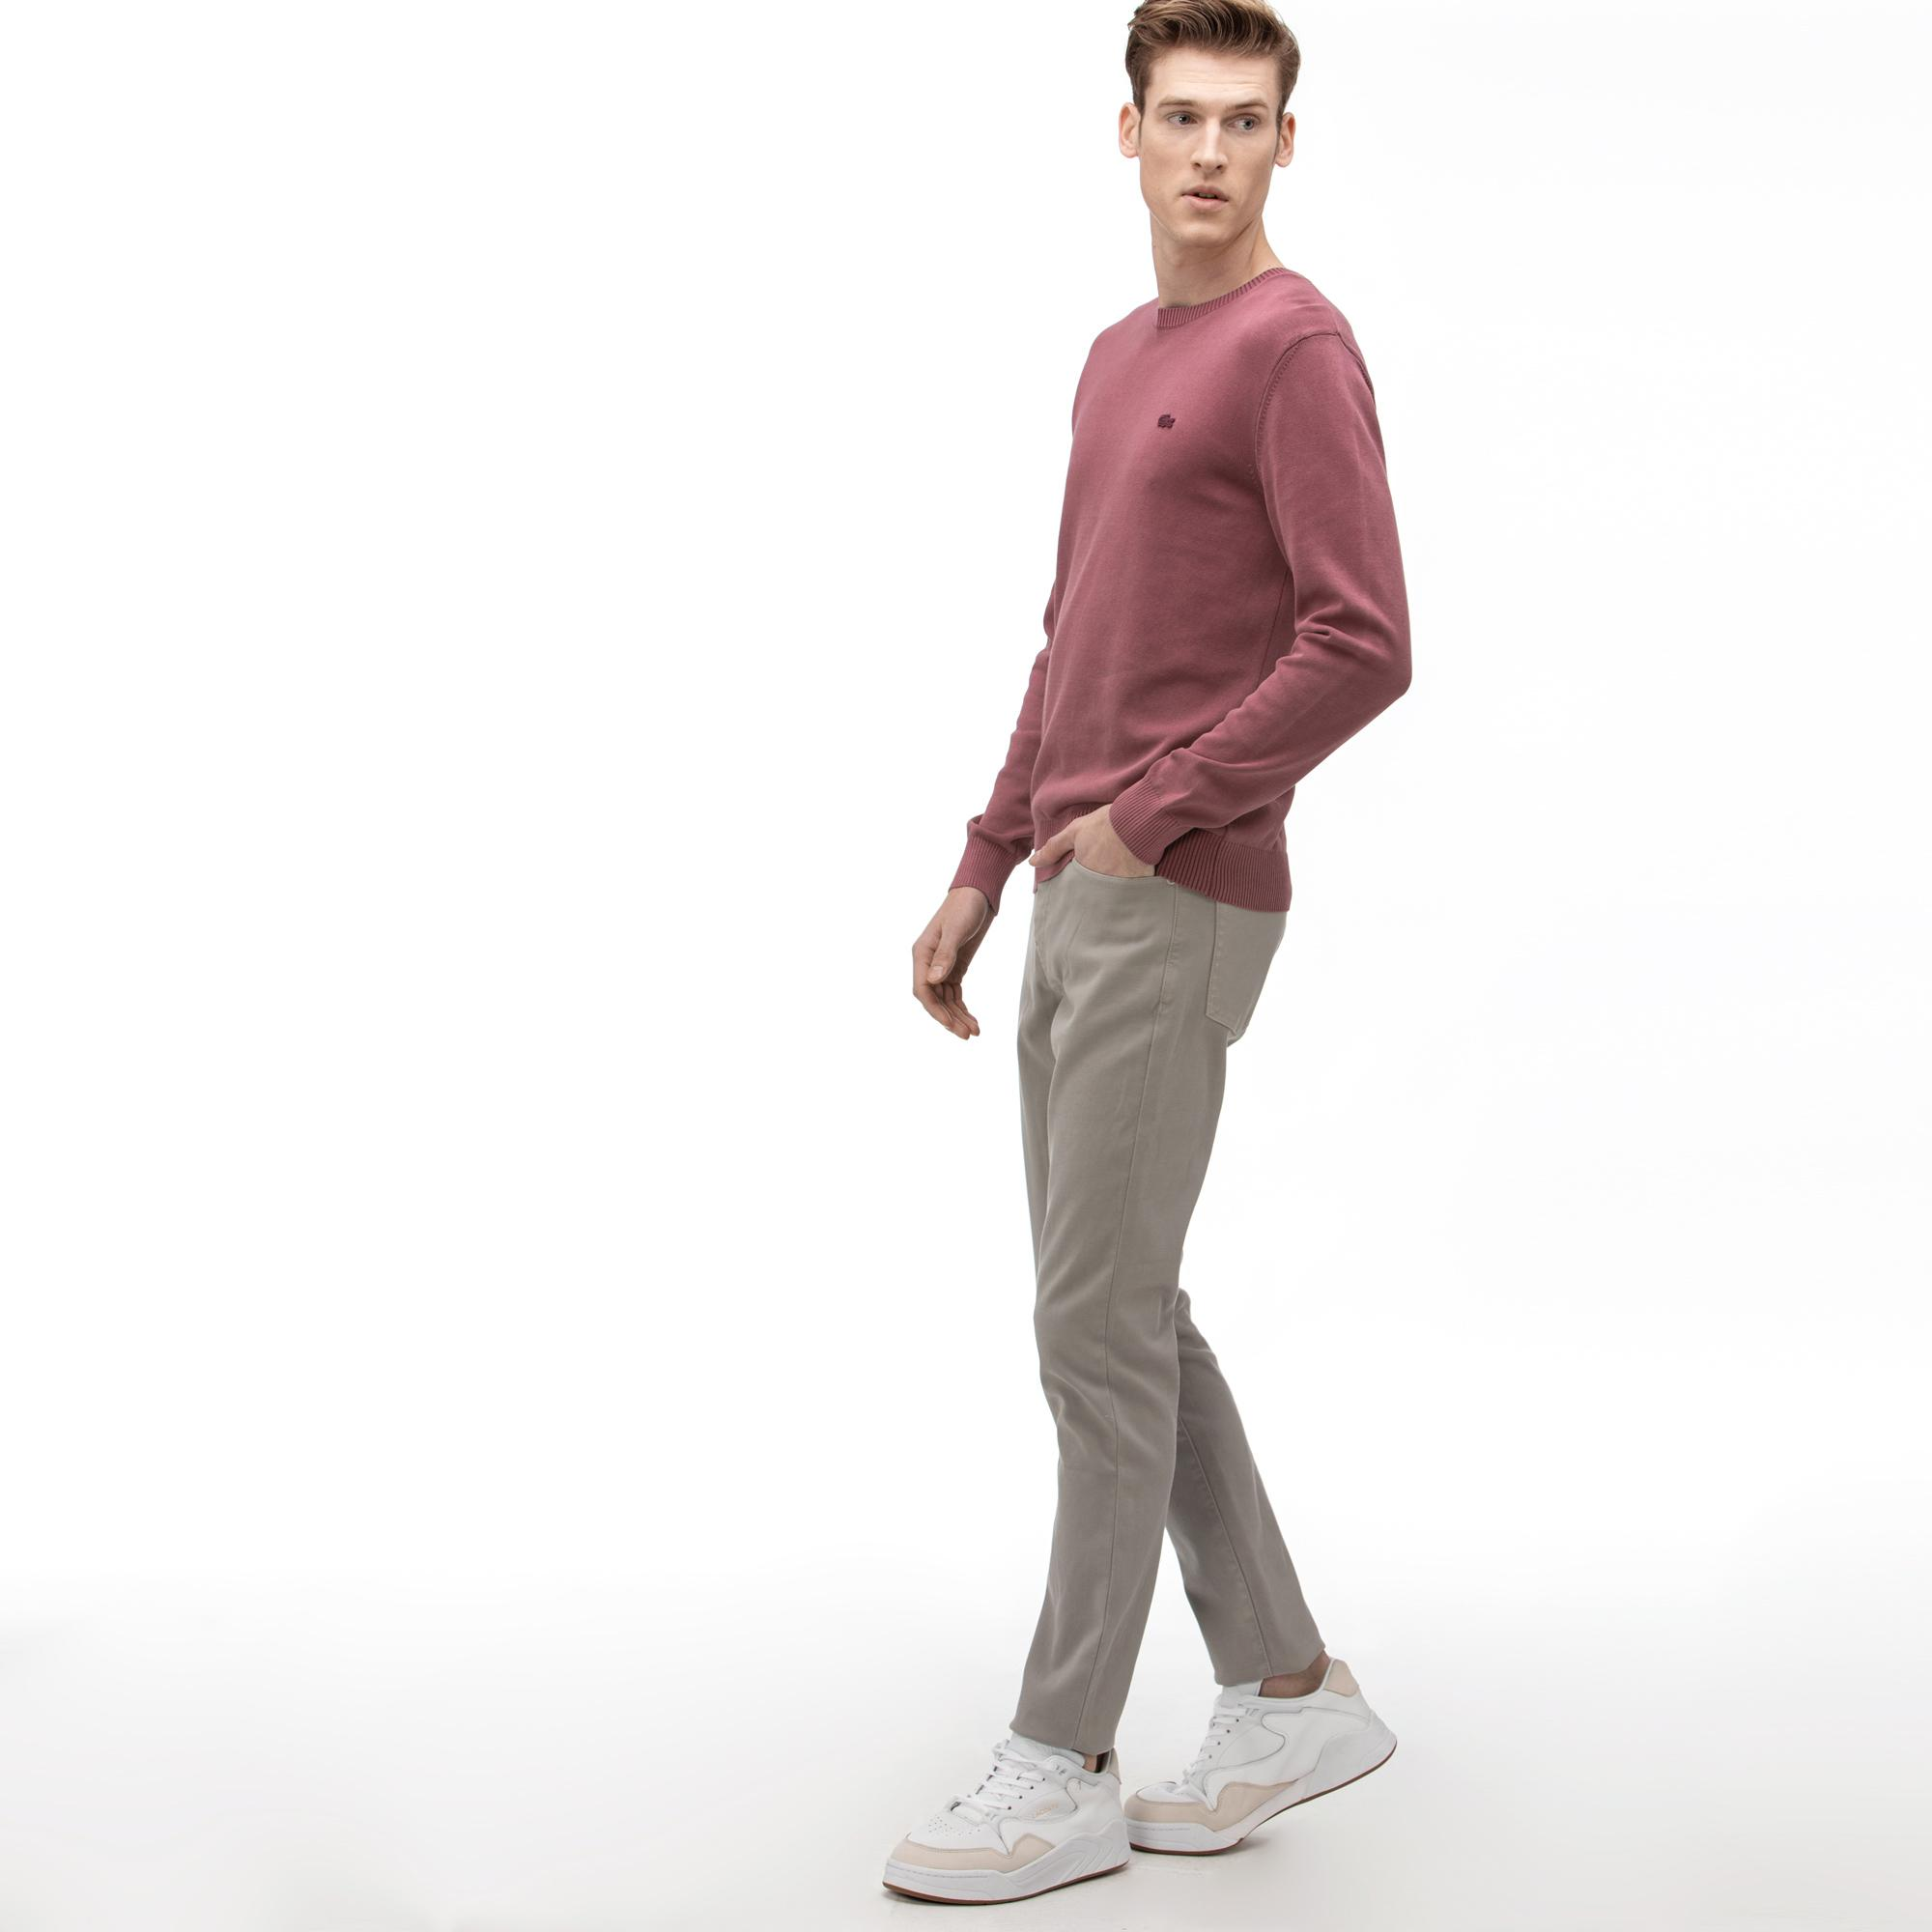 Lacoste Men's Slim Fit 5-Pocket Stretch Cotton Pants